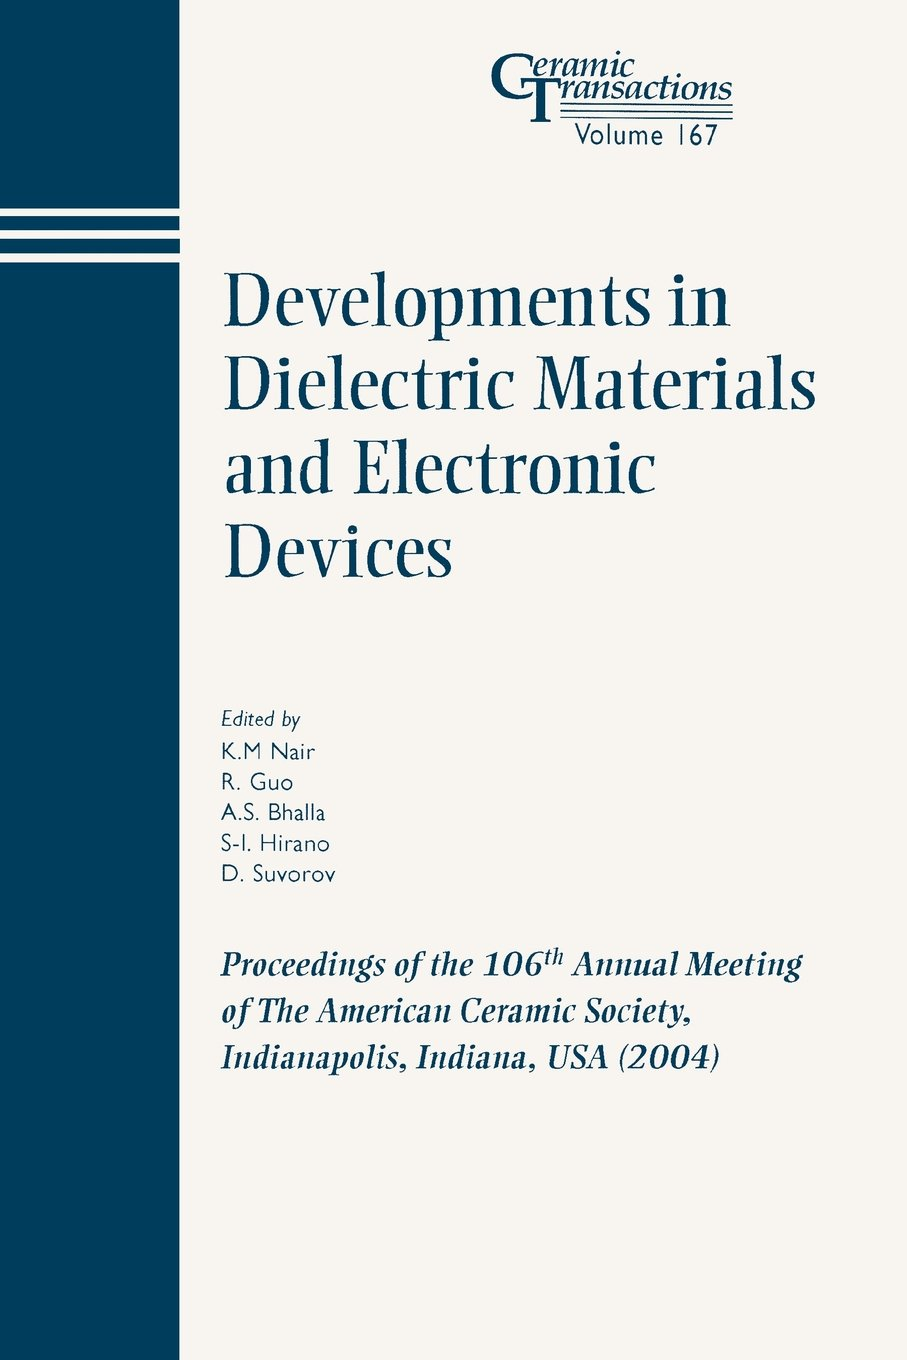 Download Developments in Dielectric Materials and Electronic Devices: Proceedings of the 106th Annual Meeting of The American Ceramic Society, Indianapolis, Indiana, USA 2004 (Ceramic Transactions Series) PDF